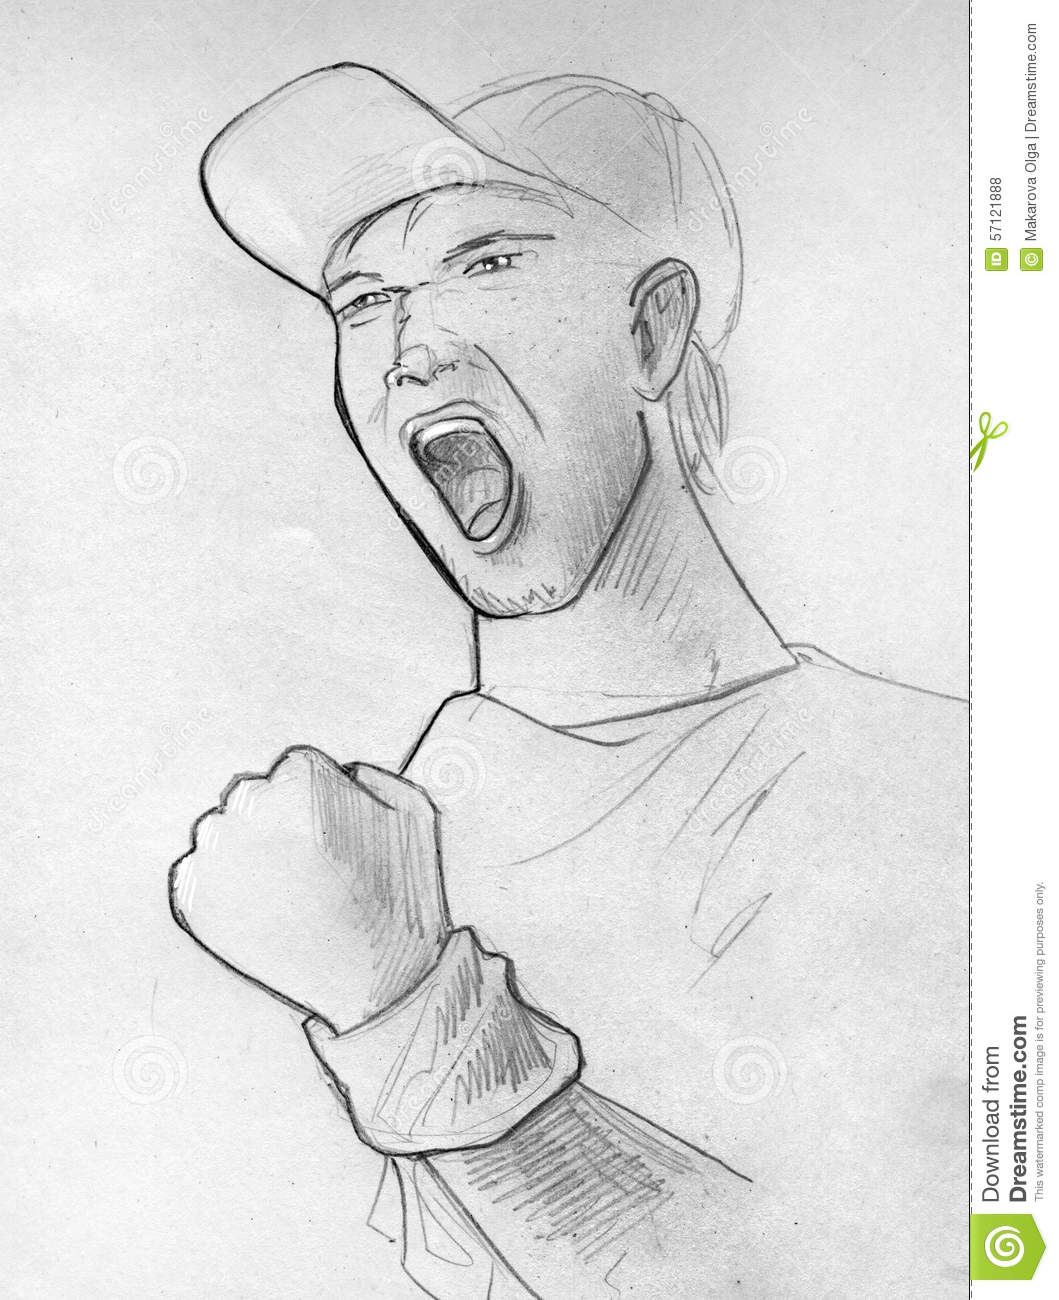 Shouting pencil stock illustrations 75 shouting pencil stock illustrations vectors clipart dreamstime